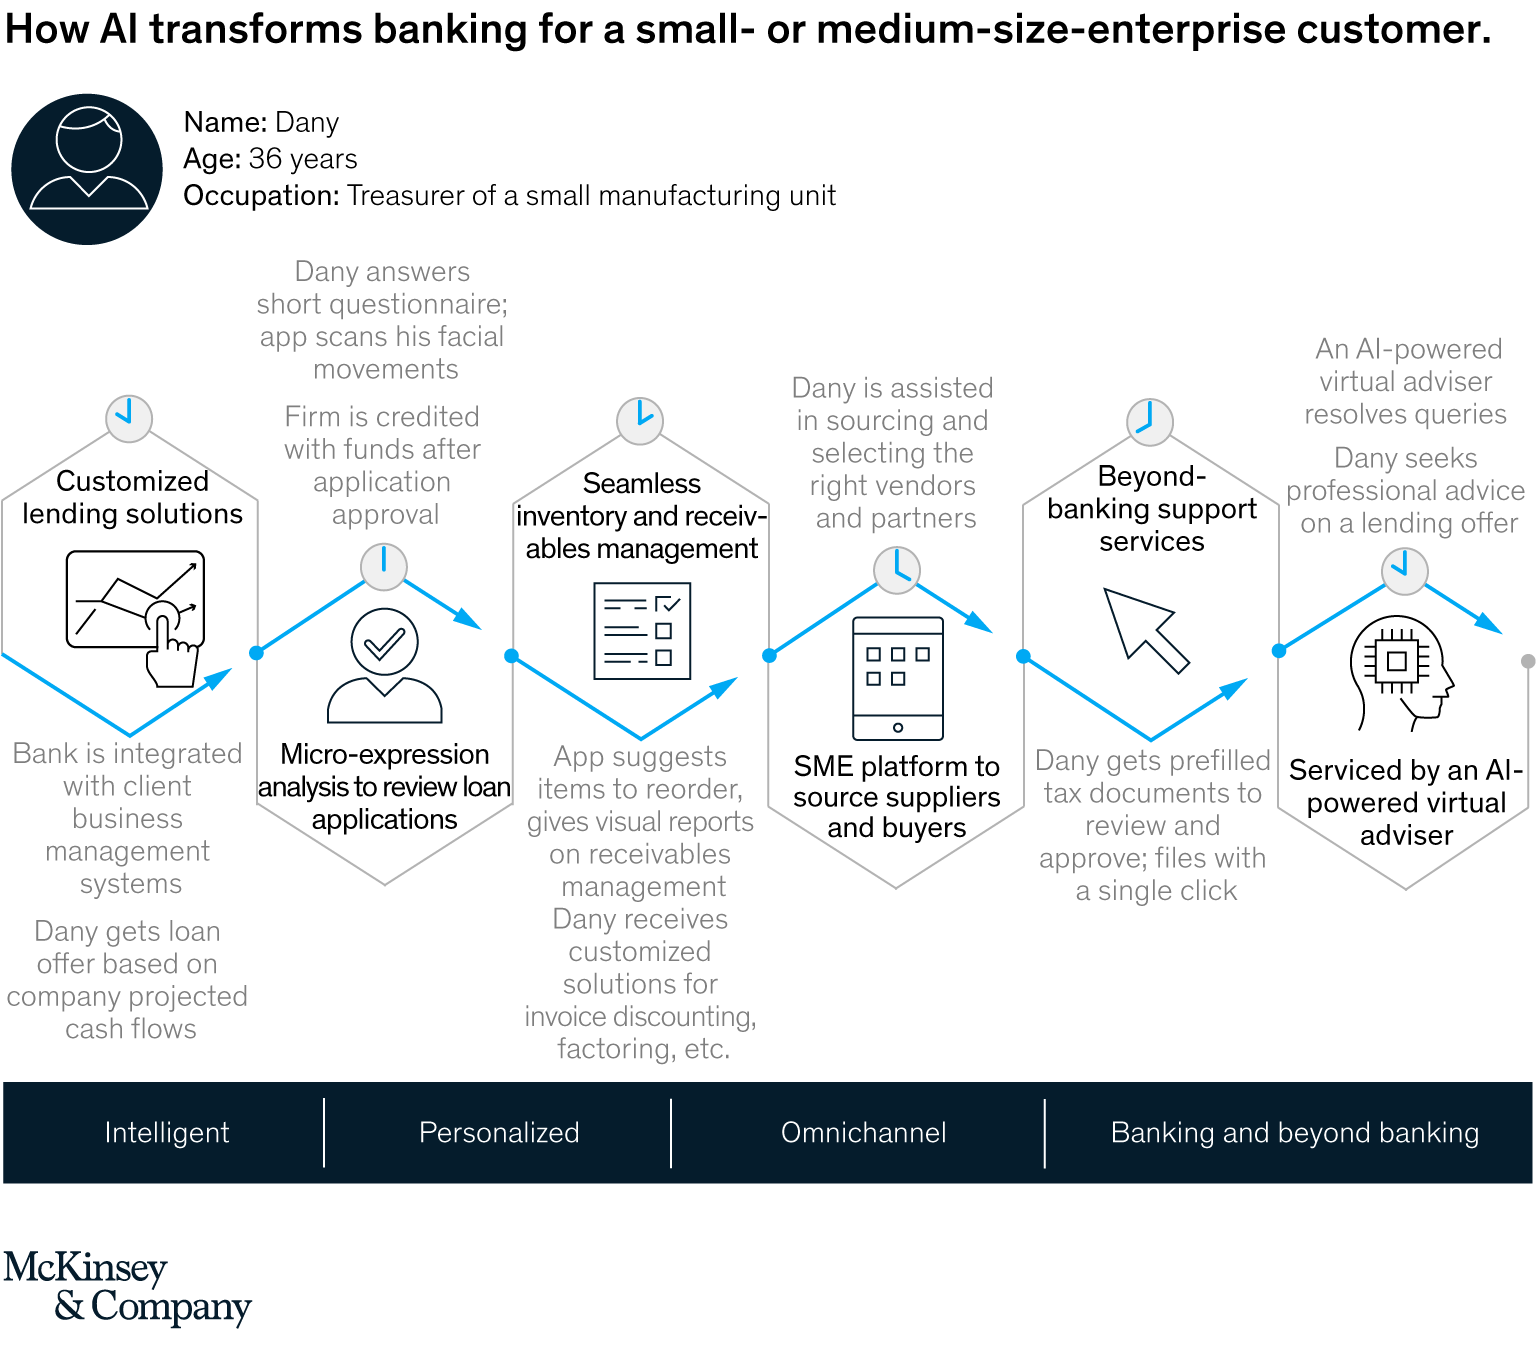 How AI transforms banking for a small- and medium-sized enterprise customer, AI-bank of the future: Can banks meet the AI challenge, McKinsey & Company, September 2020